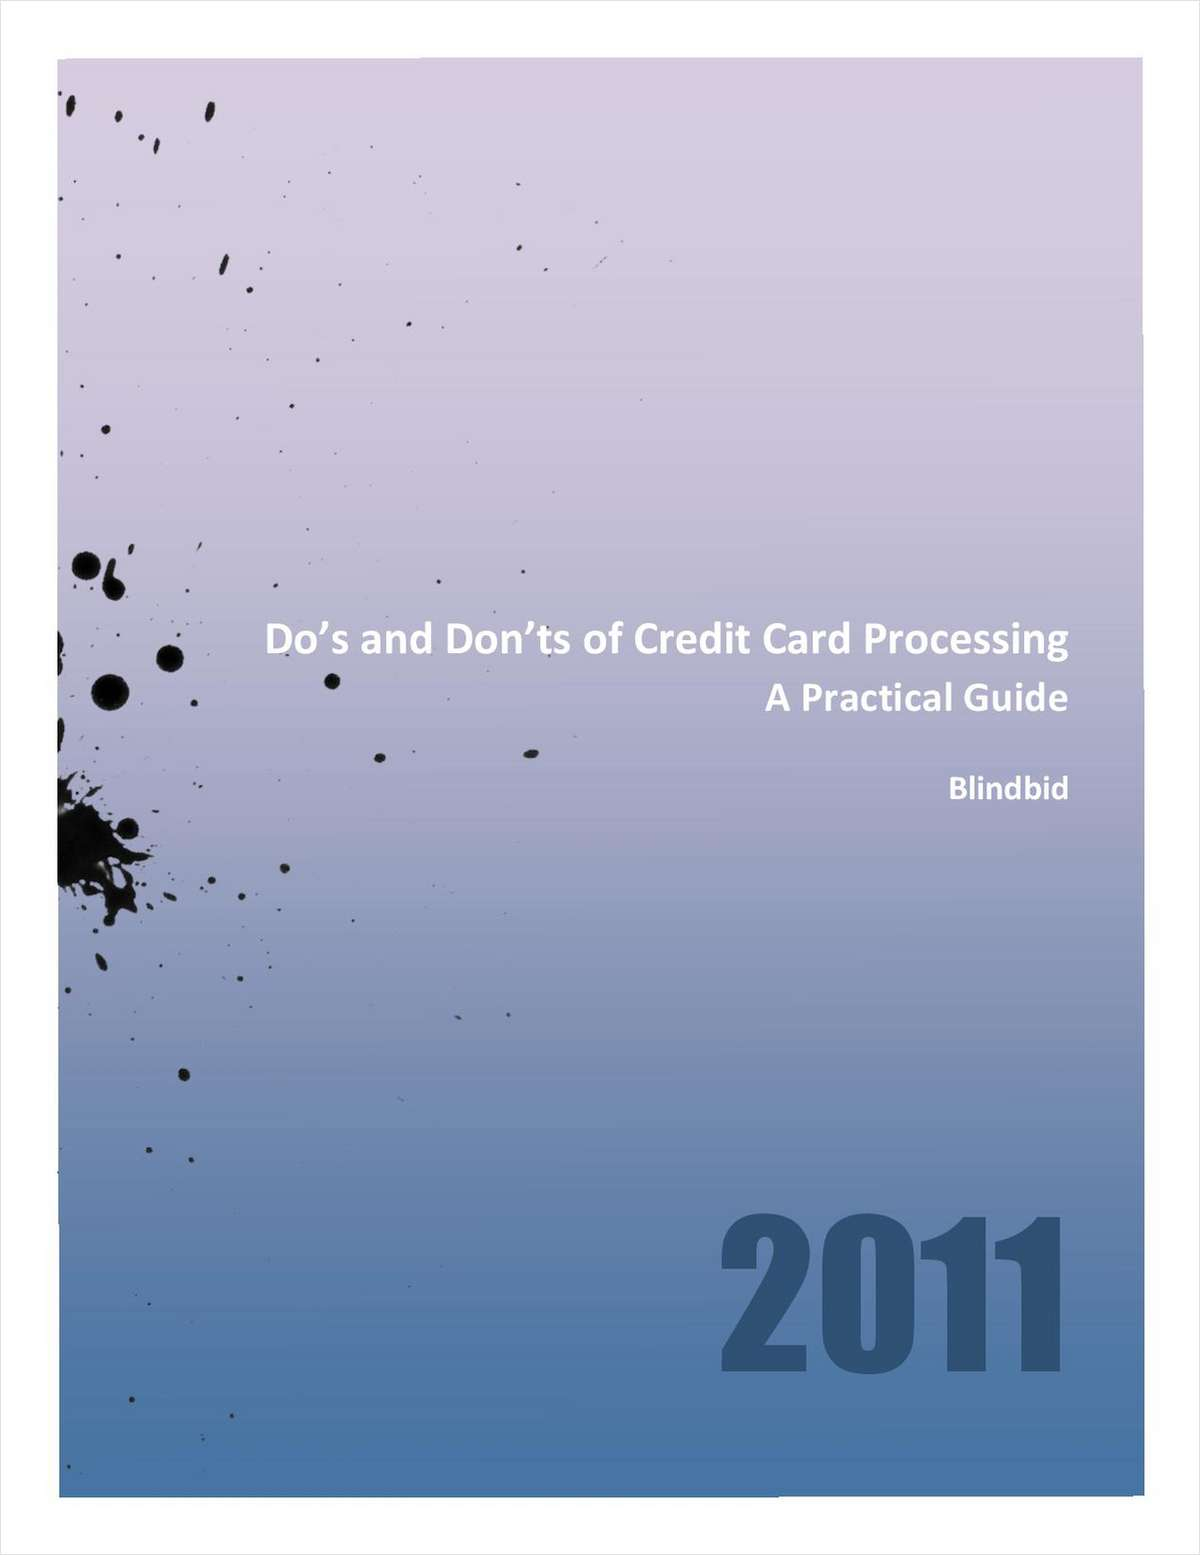 Do's and Don'ts of Credit Card Processing